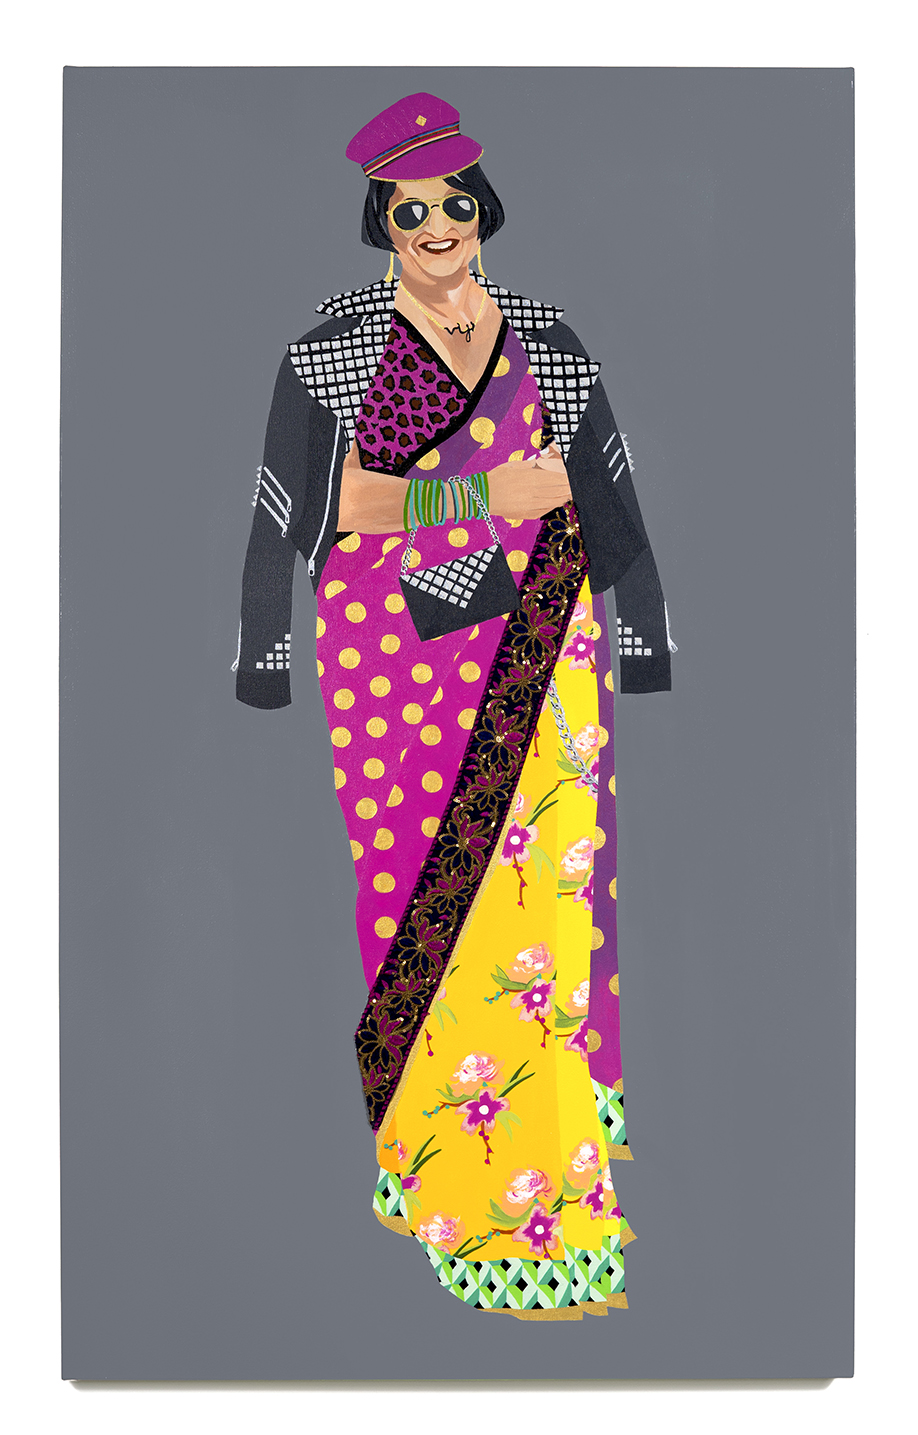 2016. Viji Aunty   (  Upping the Aunty   series)   Acrylic and fabric on canvas   36 in. x 60 in.   iji Aunty wears a studded biker jacket with matching clutch. Her fuchsia leopard print blouse successfully contrasts with the multi-patterned sari hand-embroidered with gold-threaded polka dots. She tops it off with aviators and a cap that makes a statement in kitschy Camp.   Private Collection